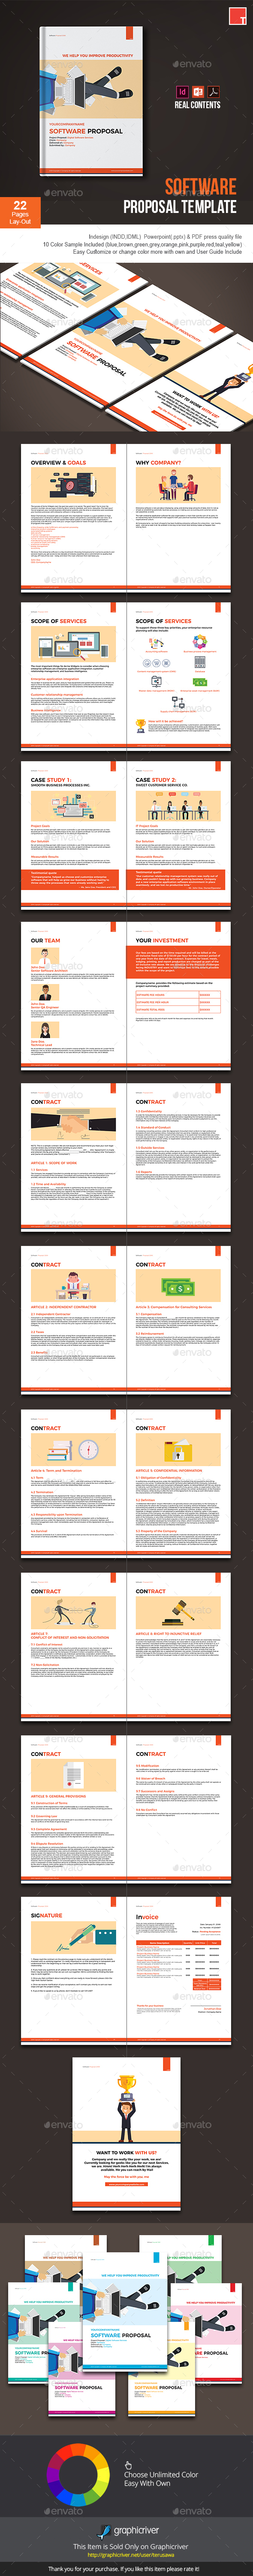 GraphicRiver Software Proposal Template 20762671